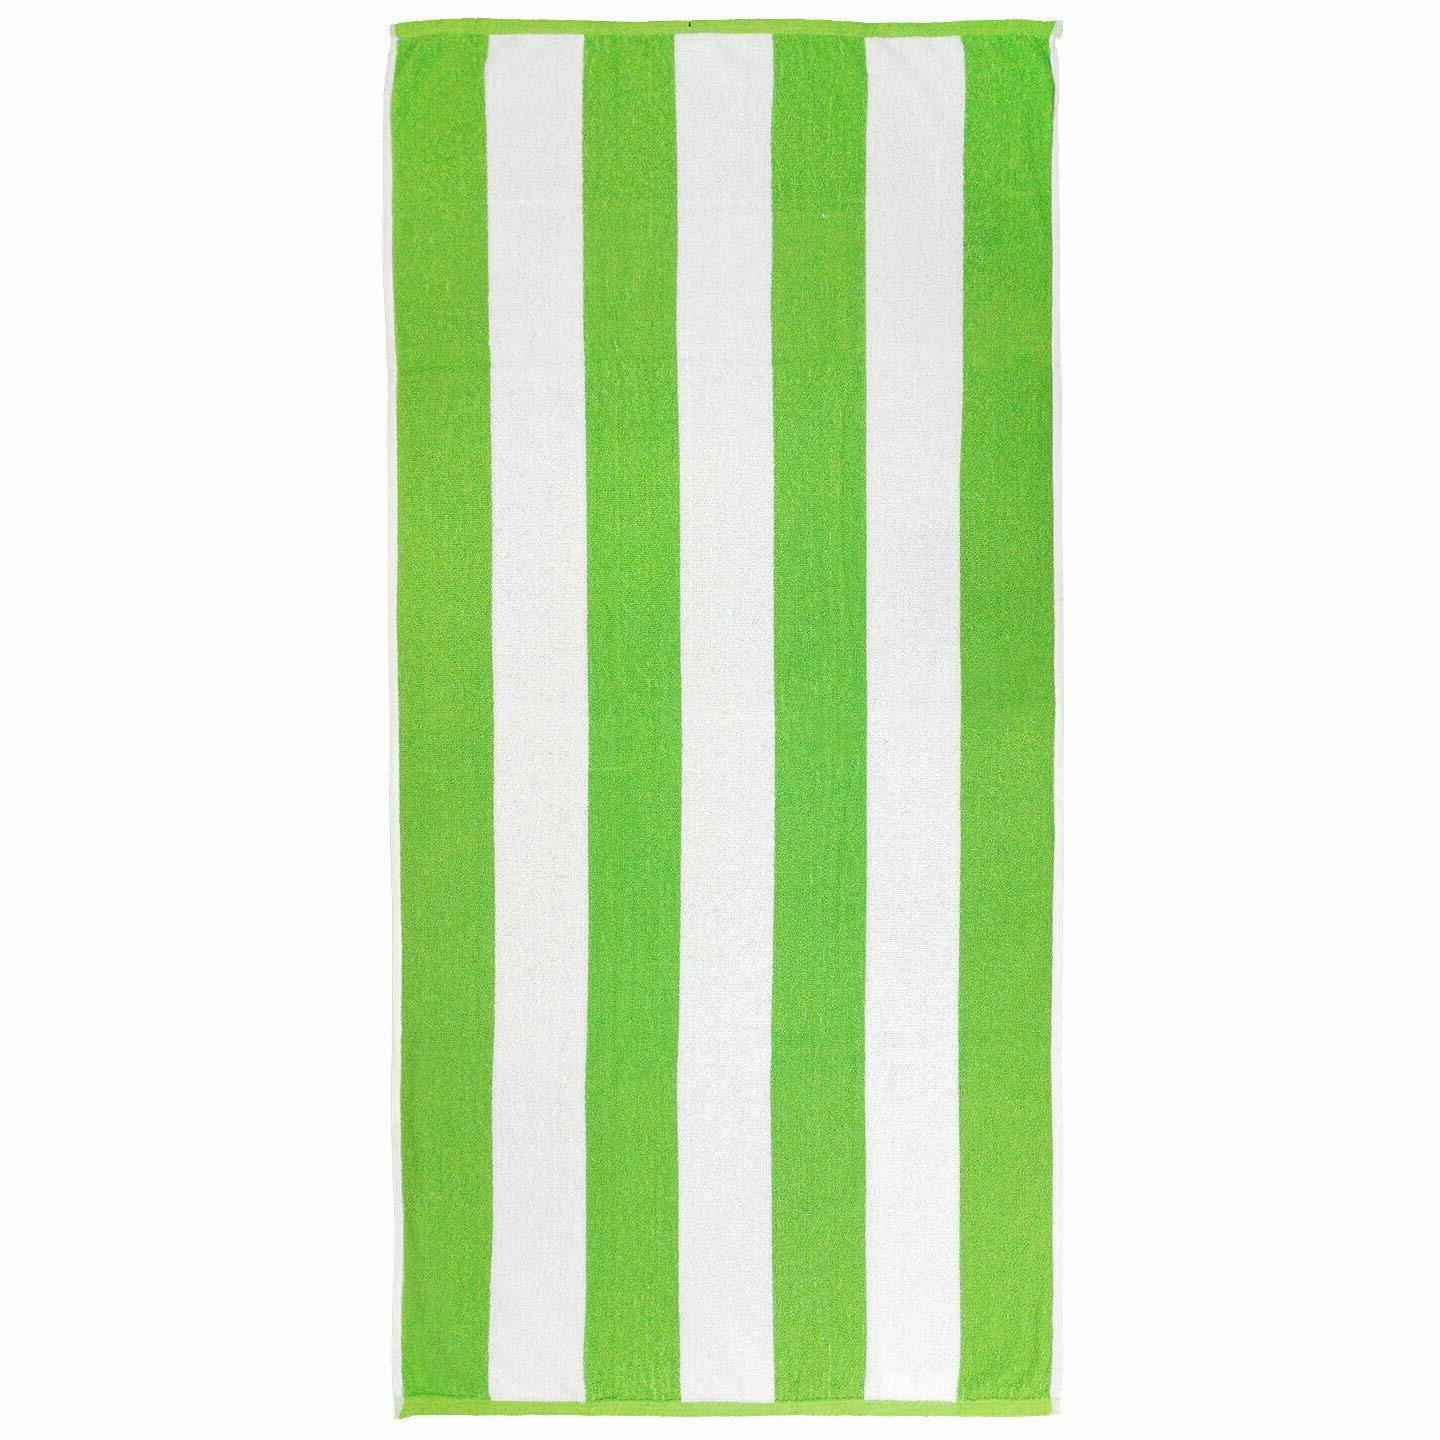 Kaufman-6-Pack Beach Terry Pool Cotton x